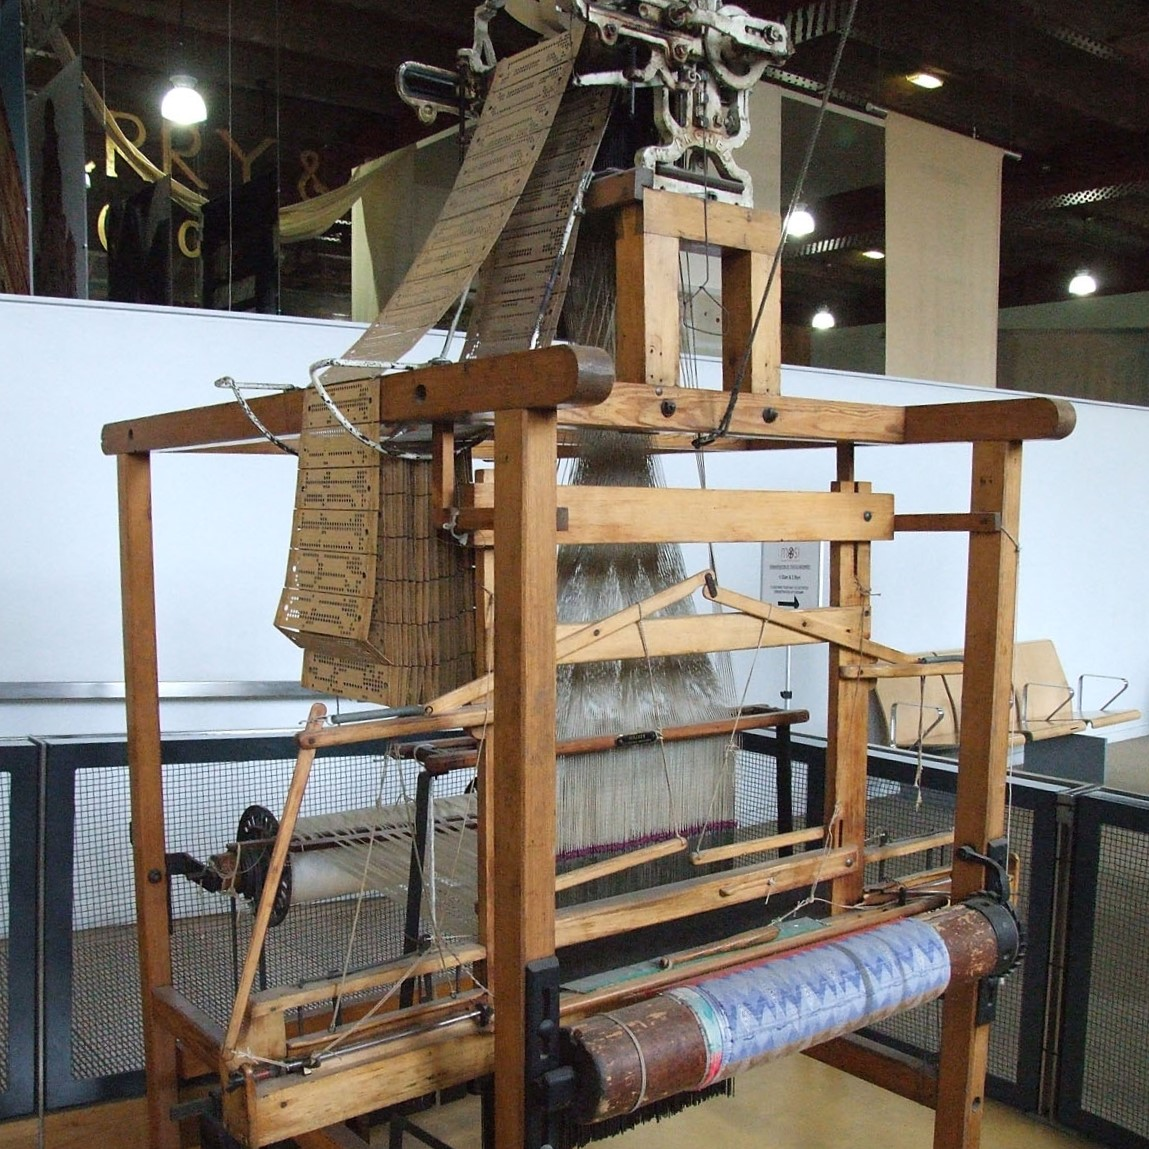 Jacquard Loom | ARCH 365 - Topics in Computational Architecture